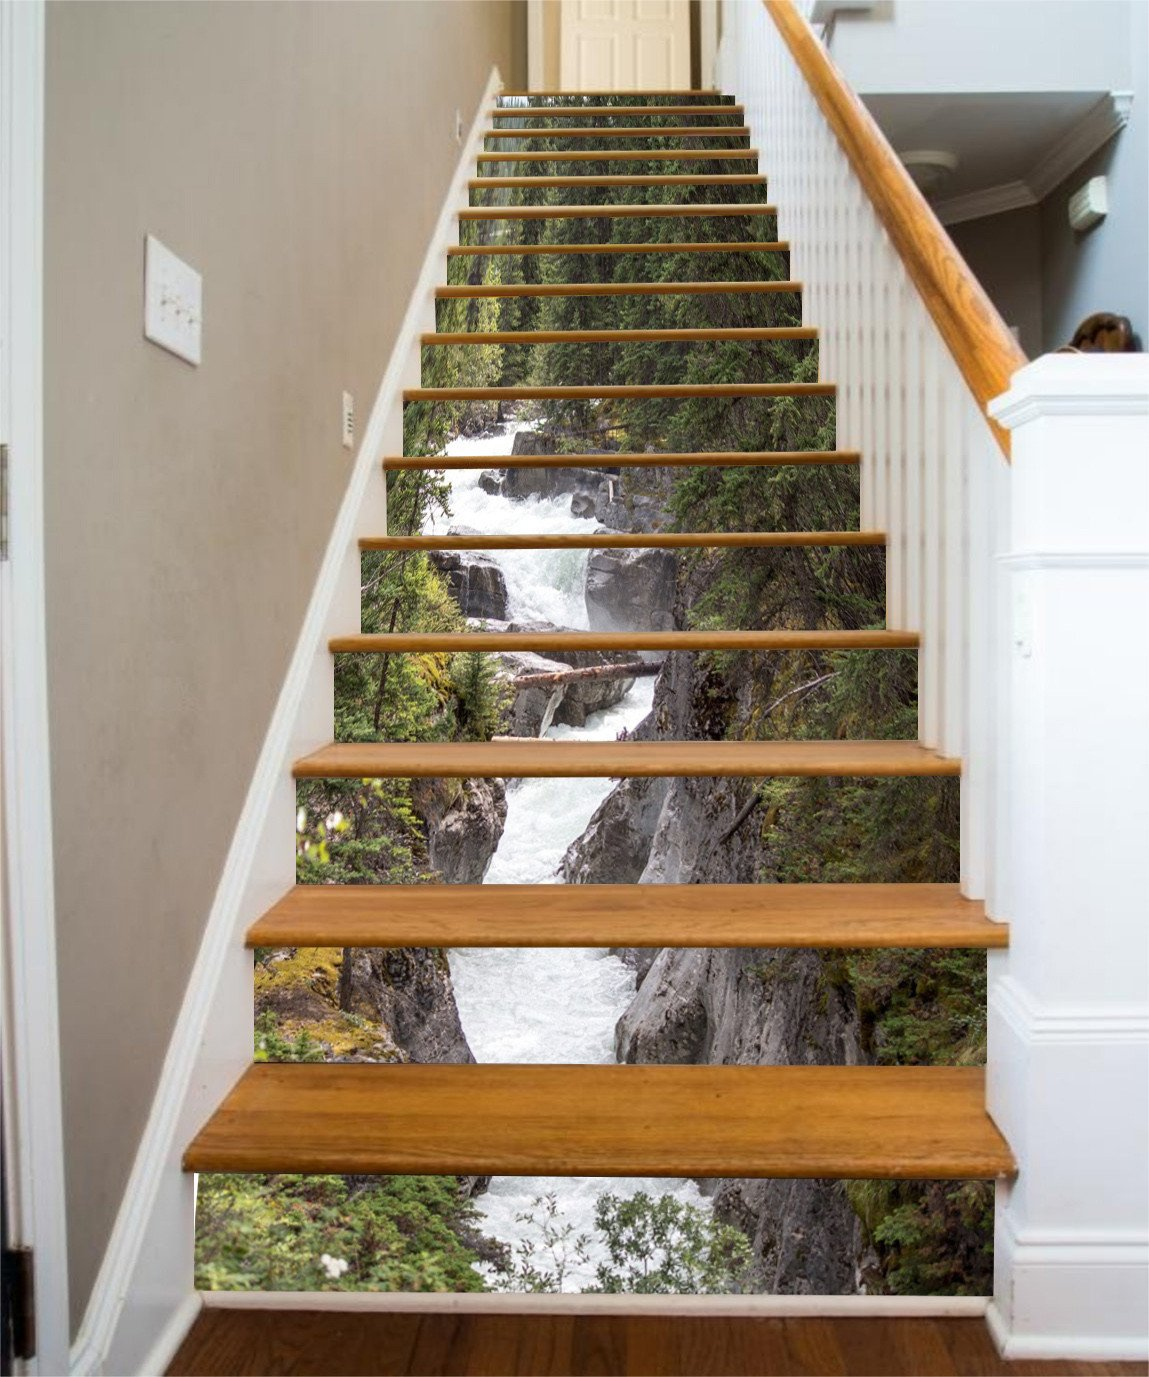 3D Maligne River Stair Risers Wallpaper AJ Wallpaper